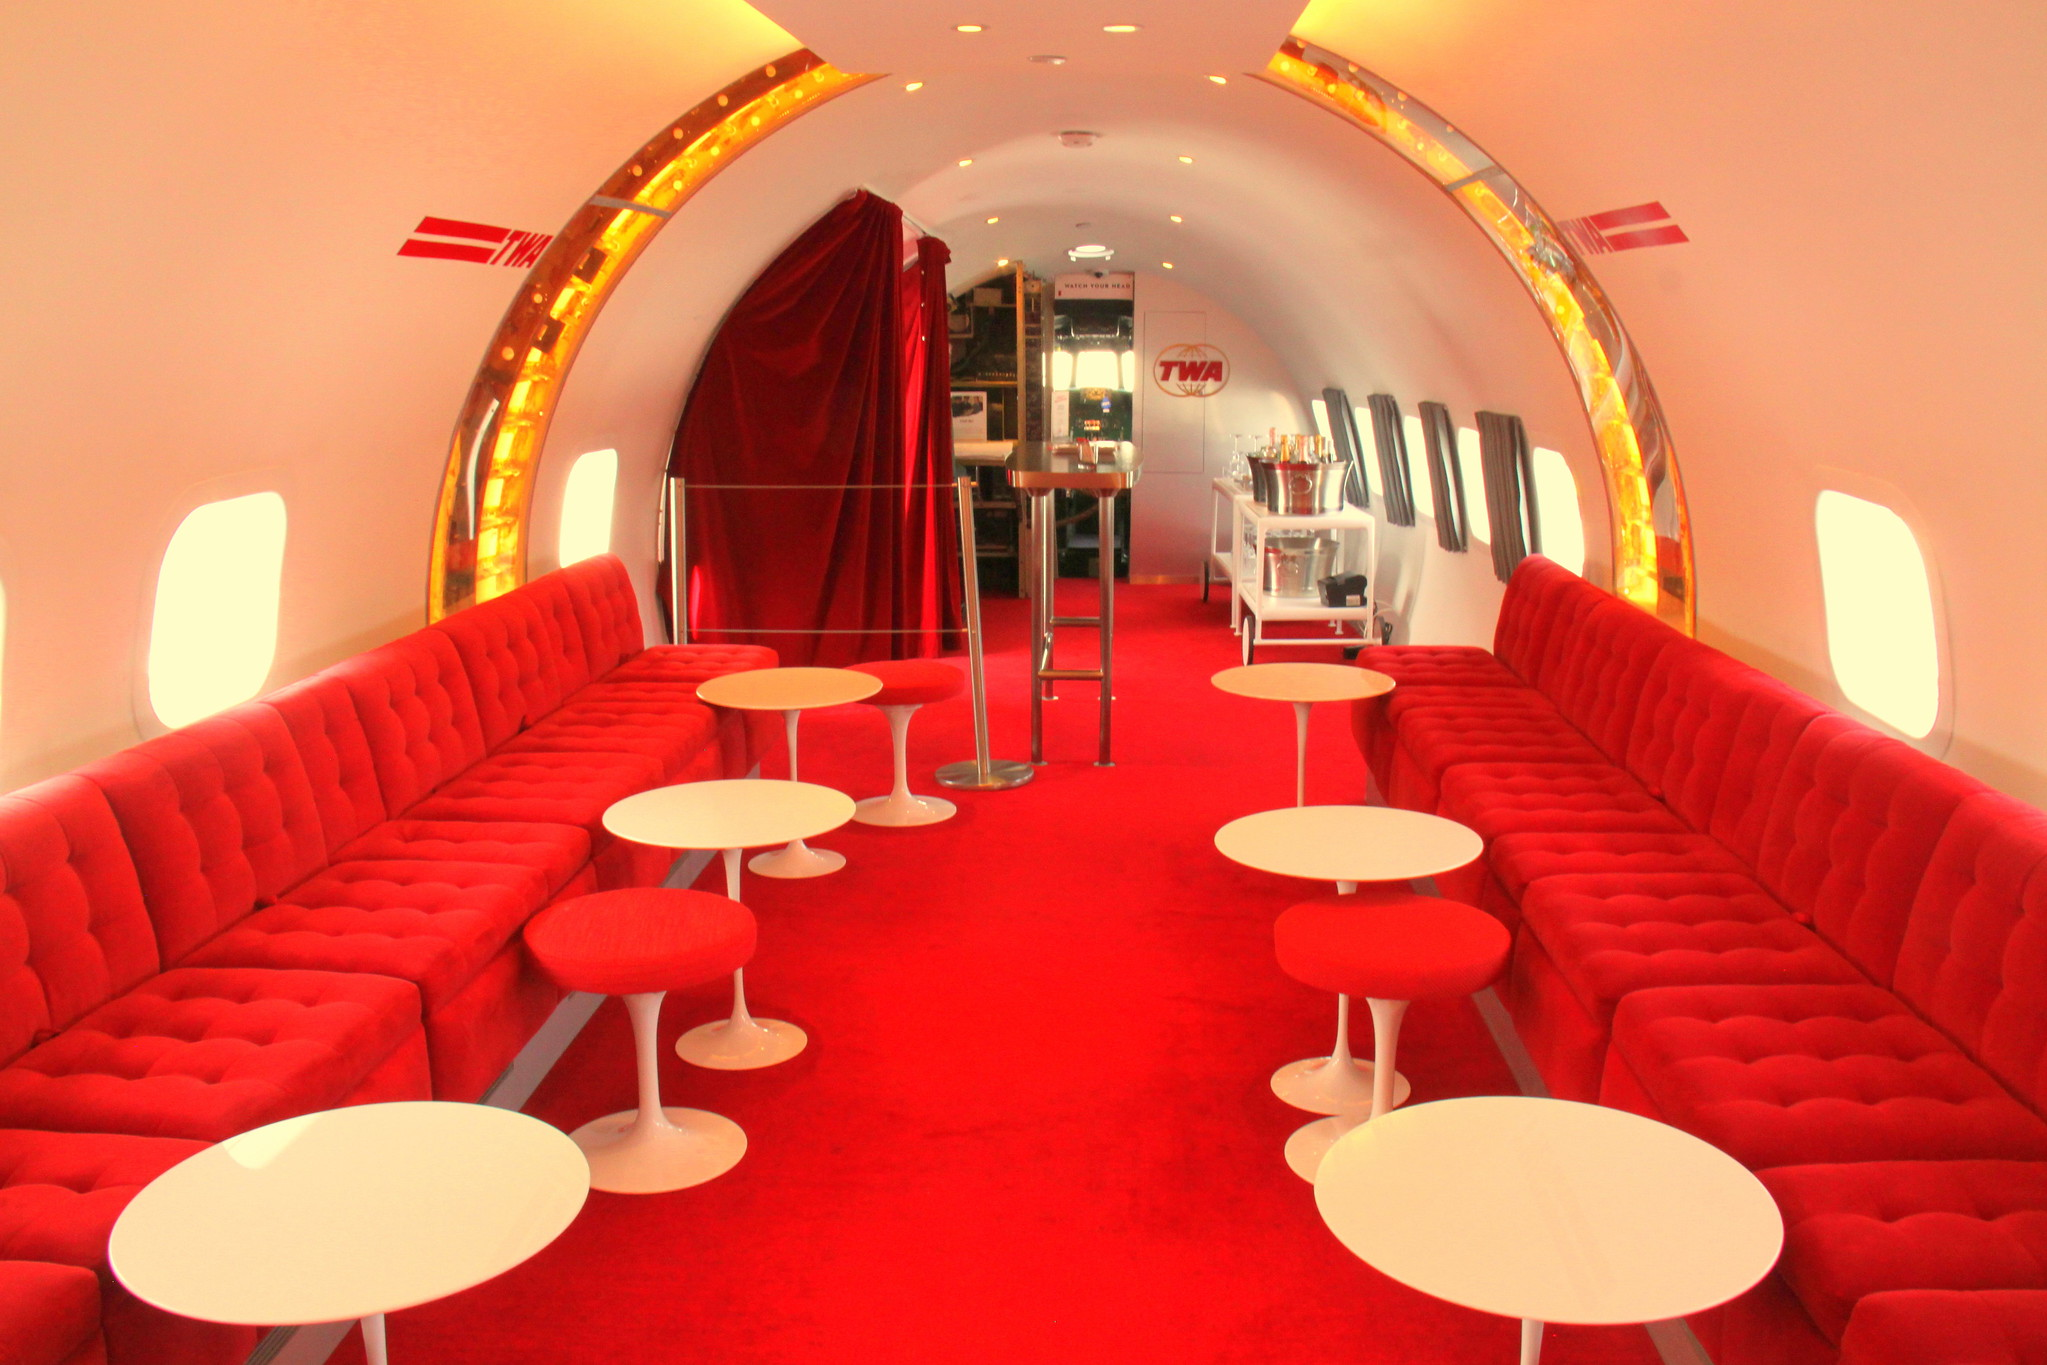 twa hotel connie bar